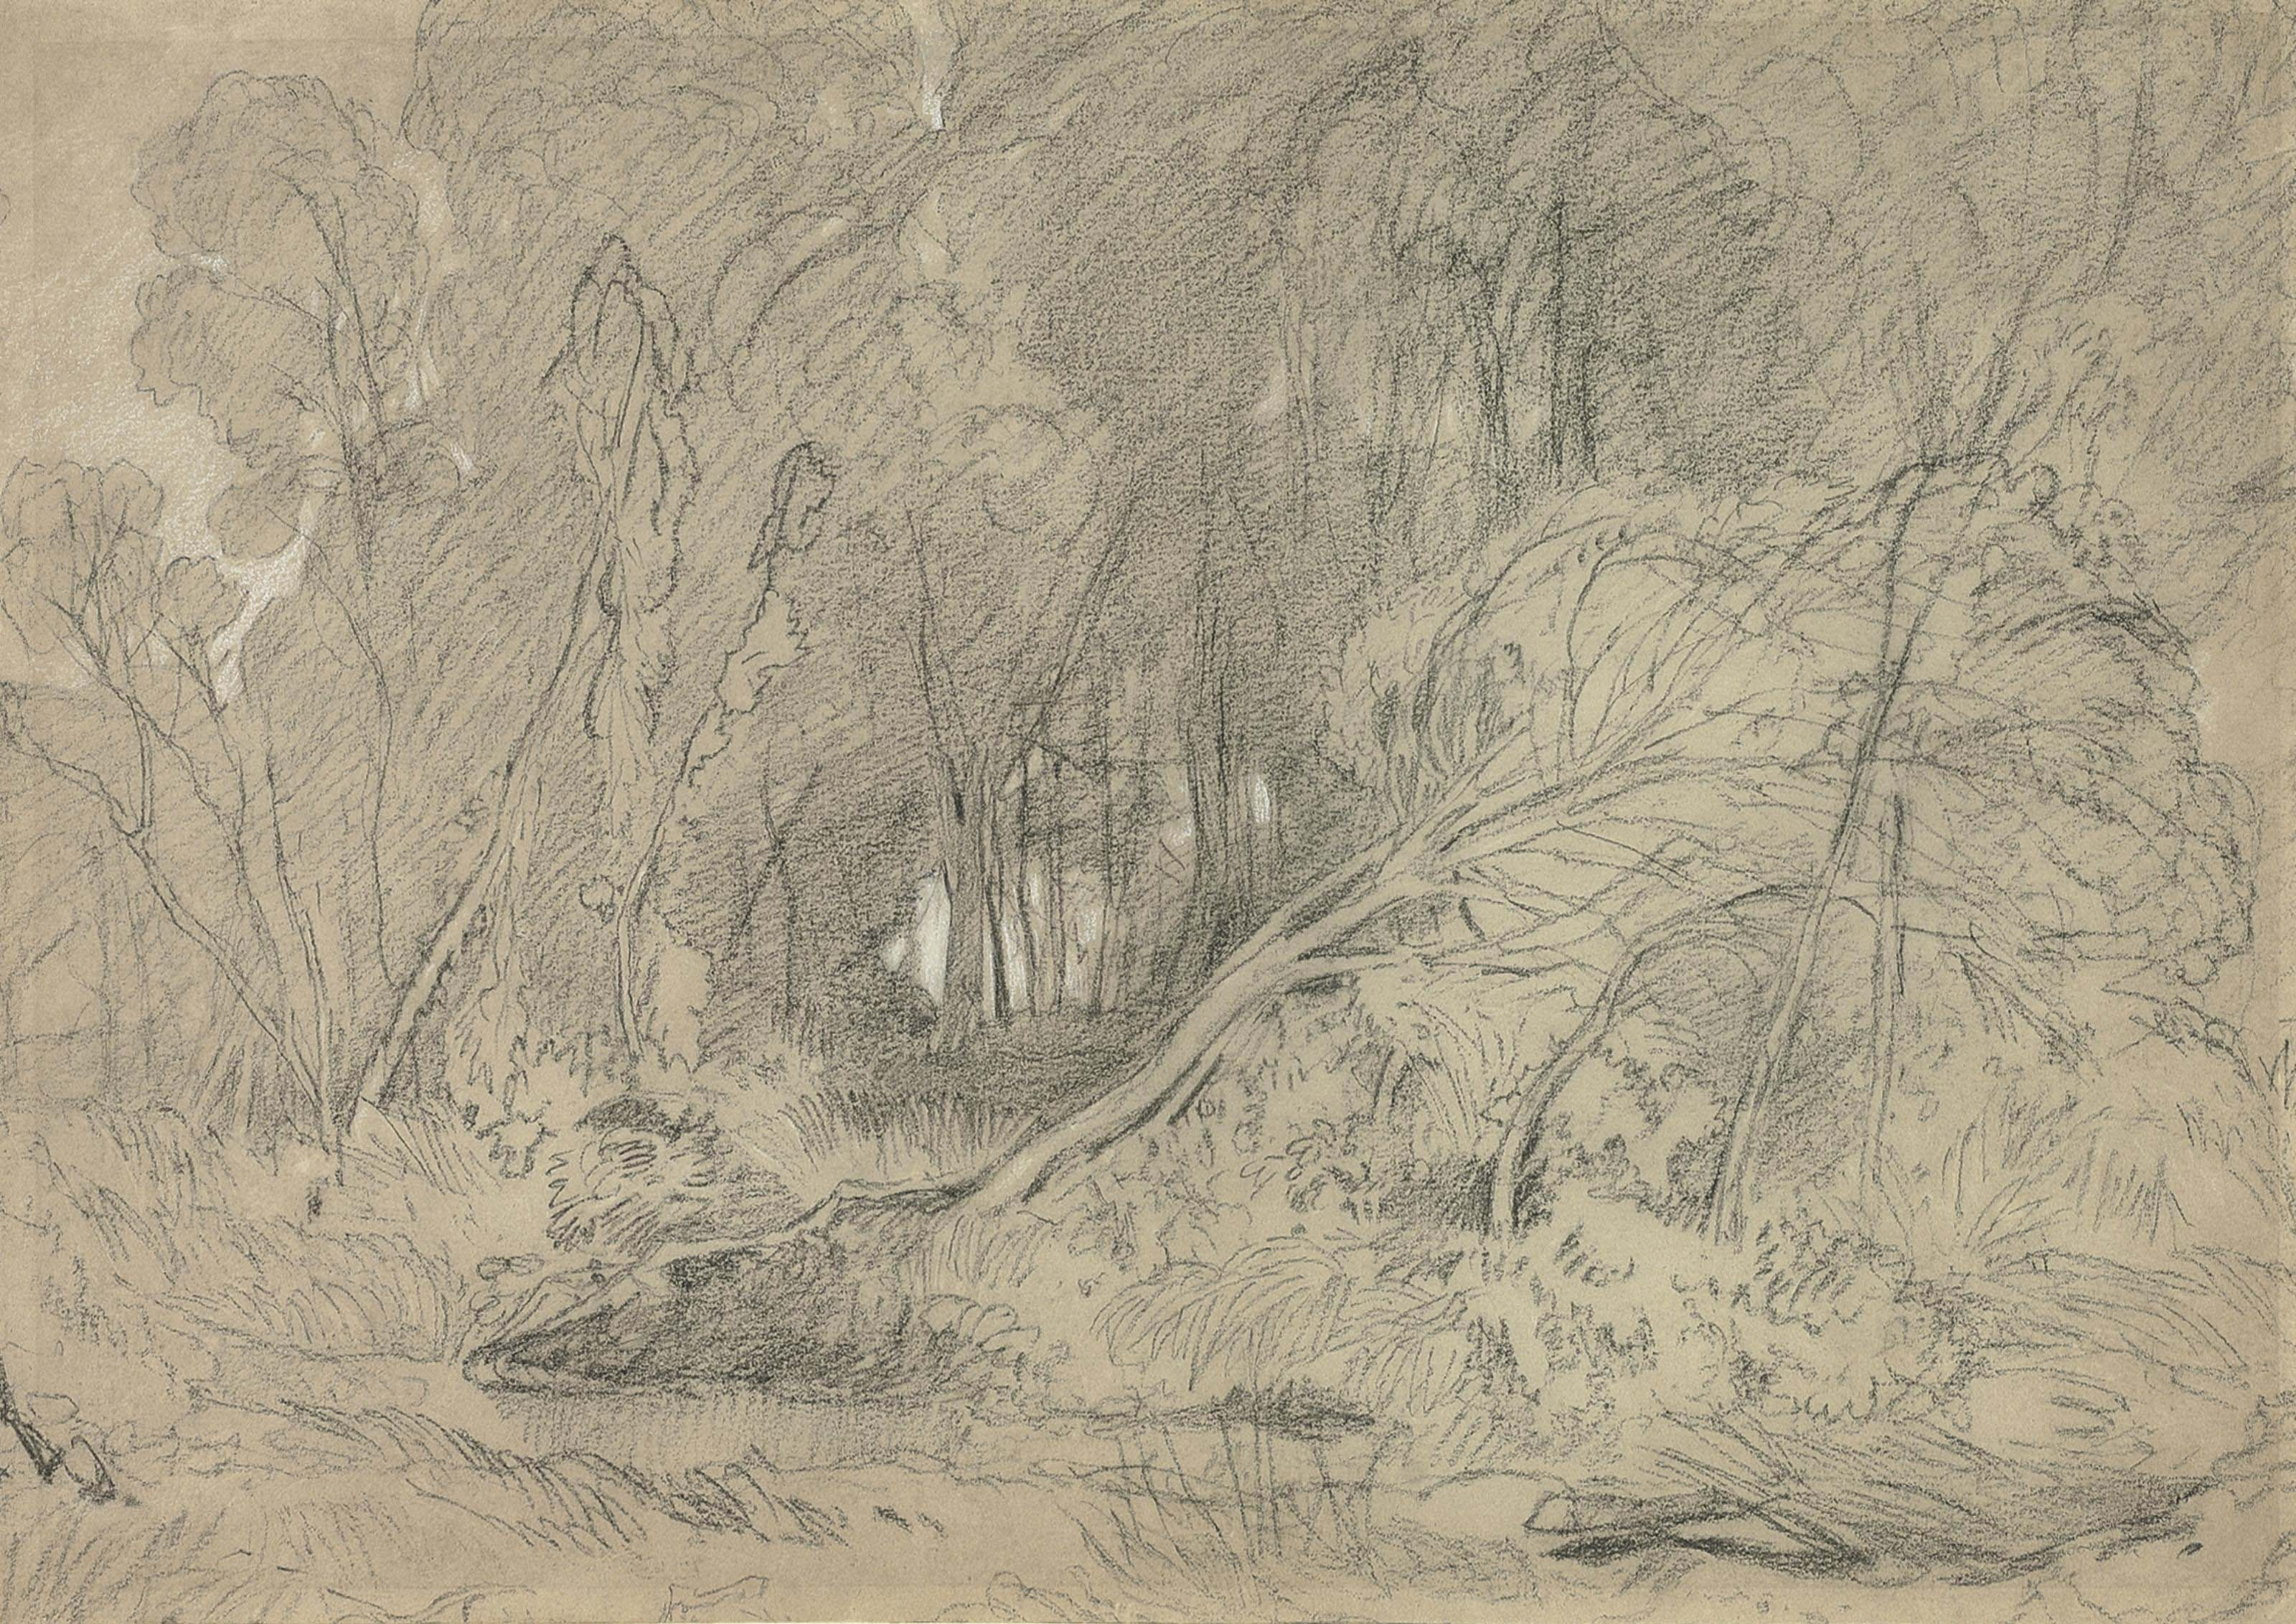 A clearing in a wood